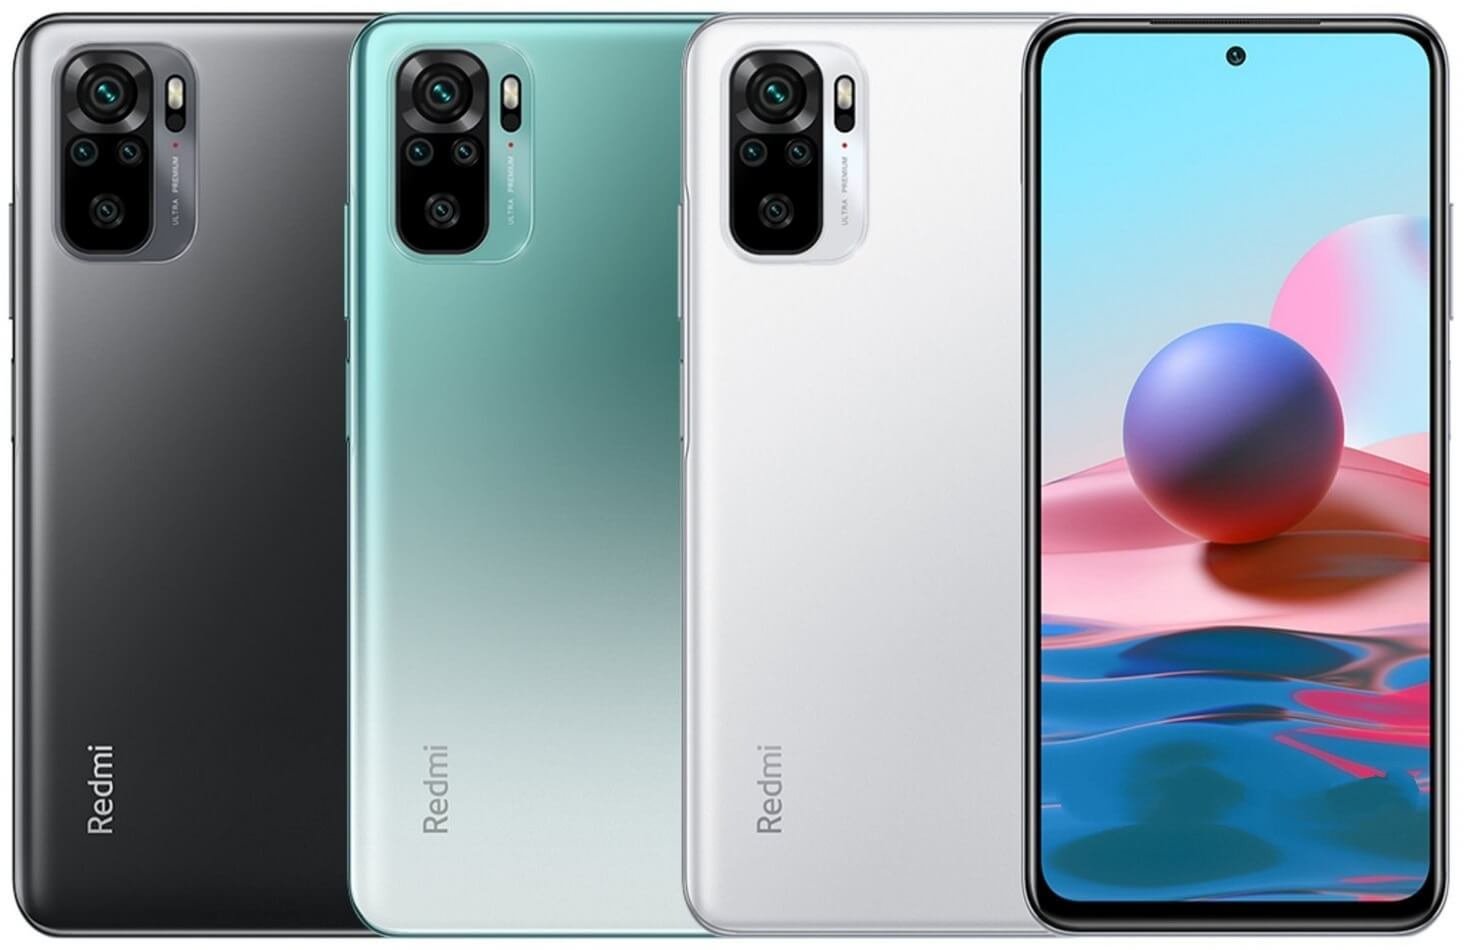 Redmi Note 10 colors